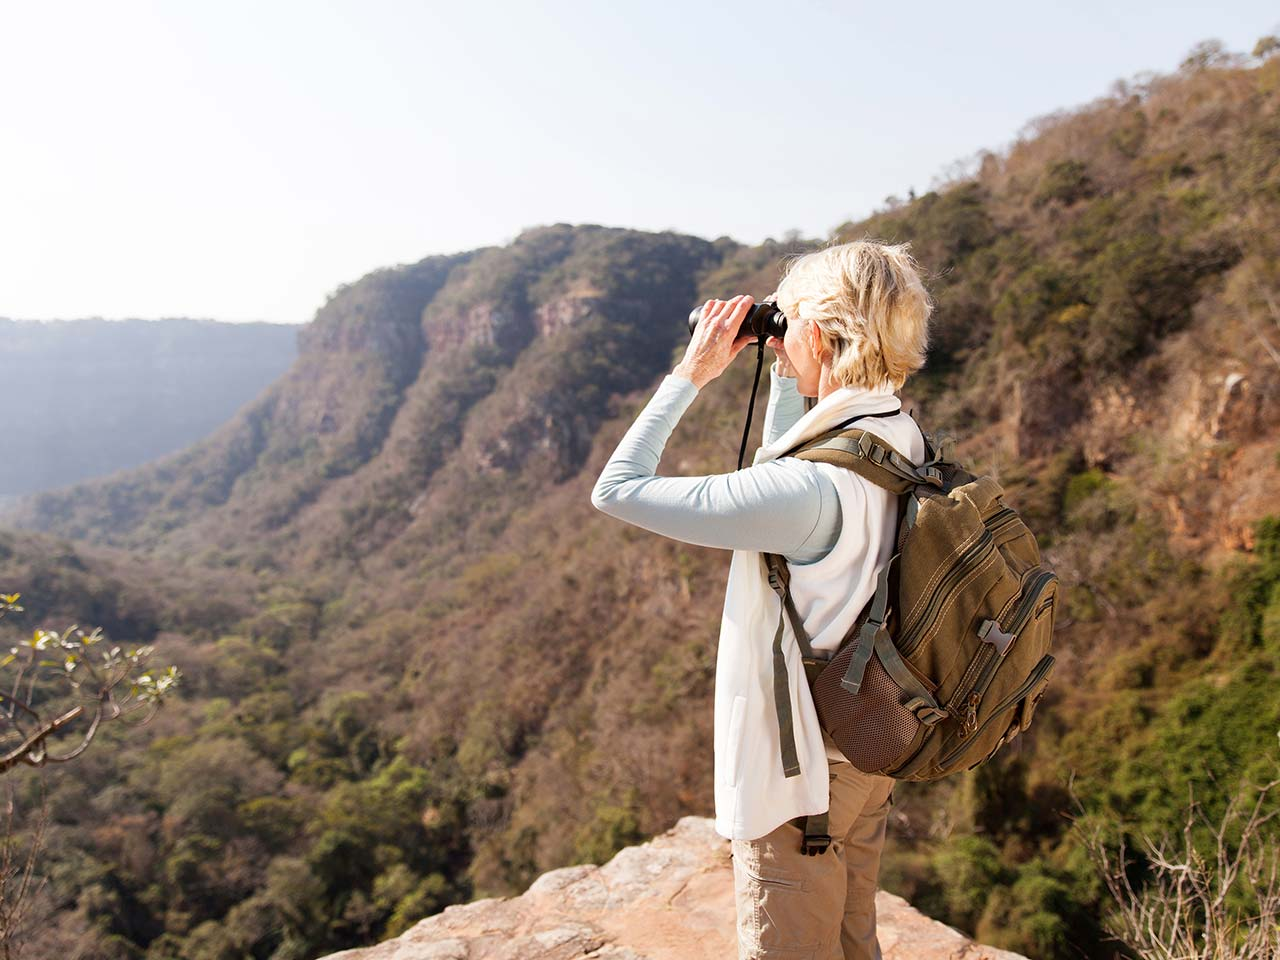 Mature woman using binoculars out hiking